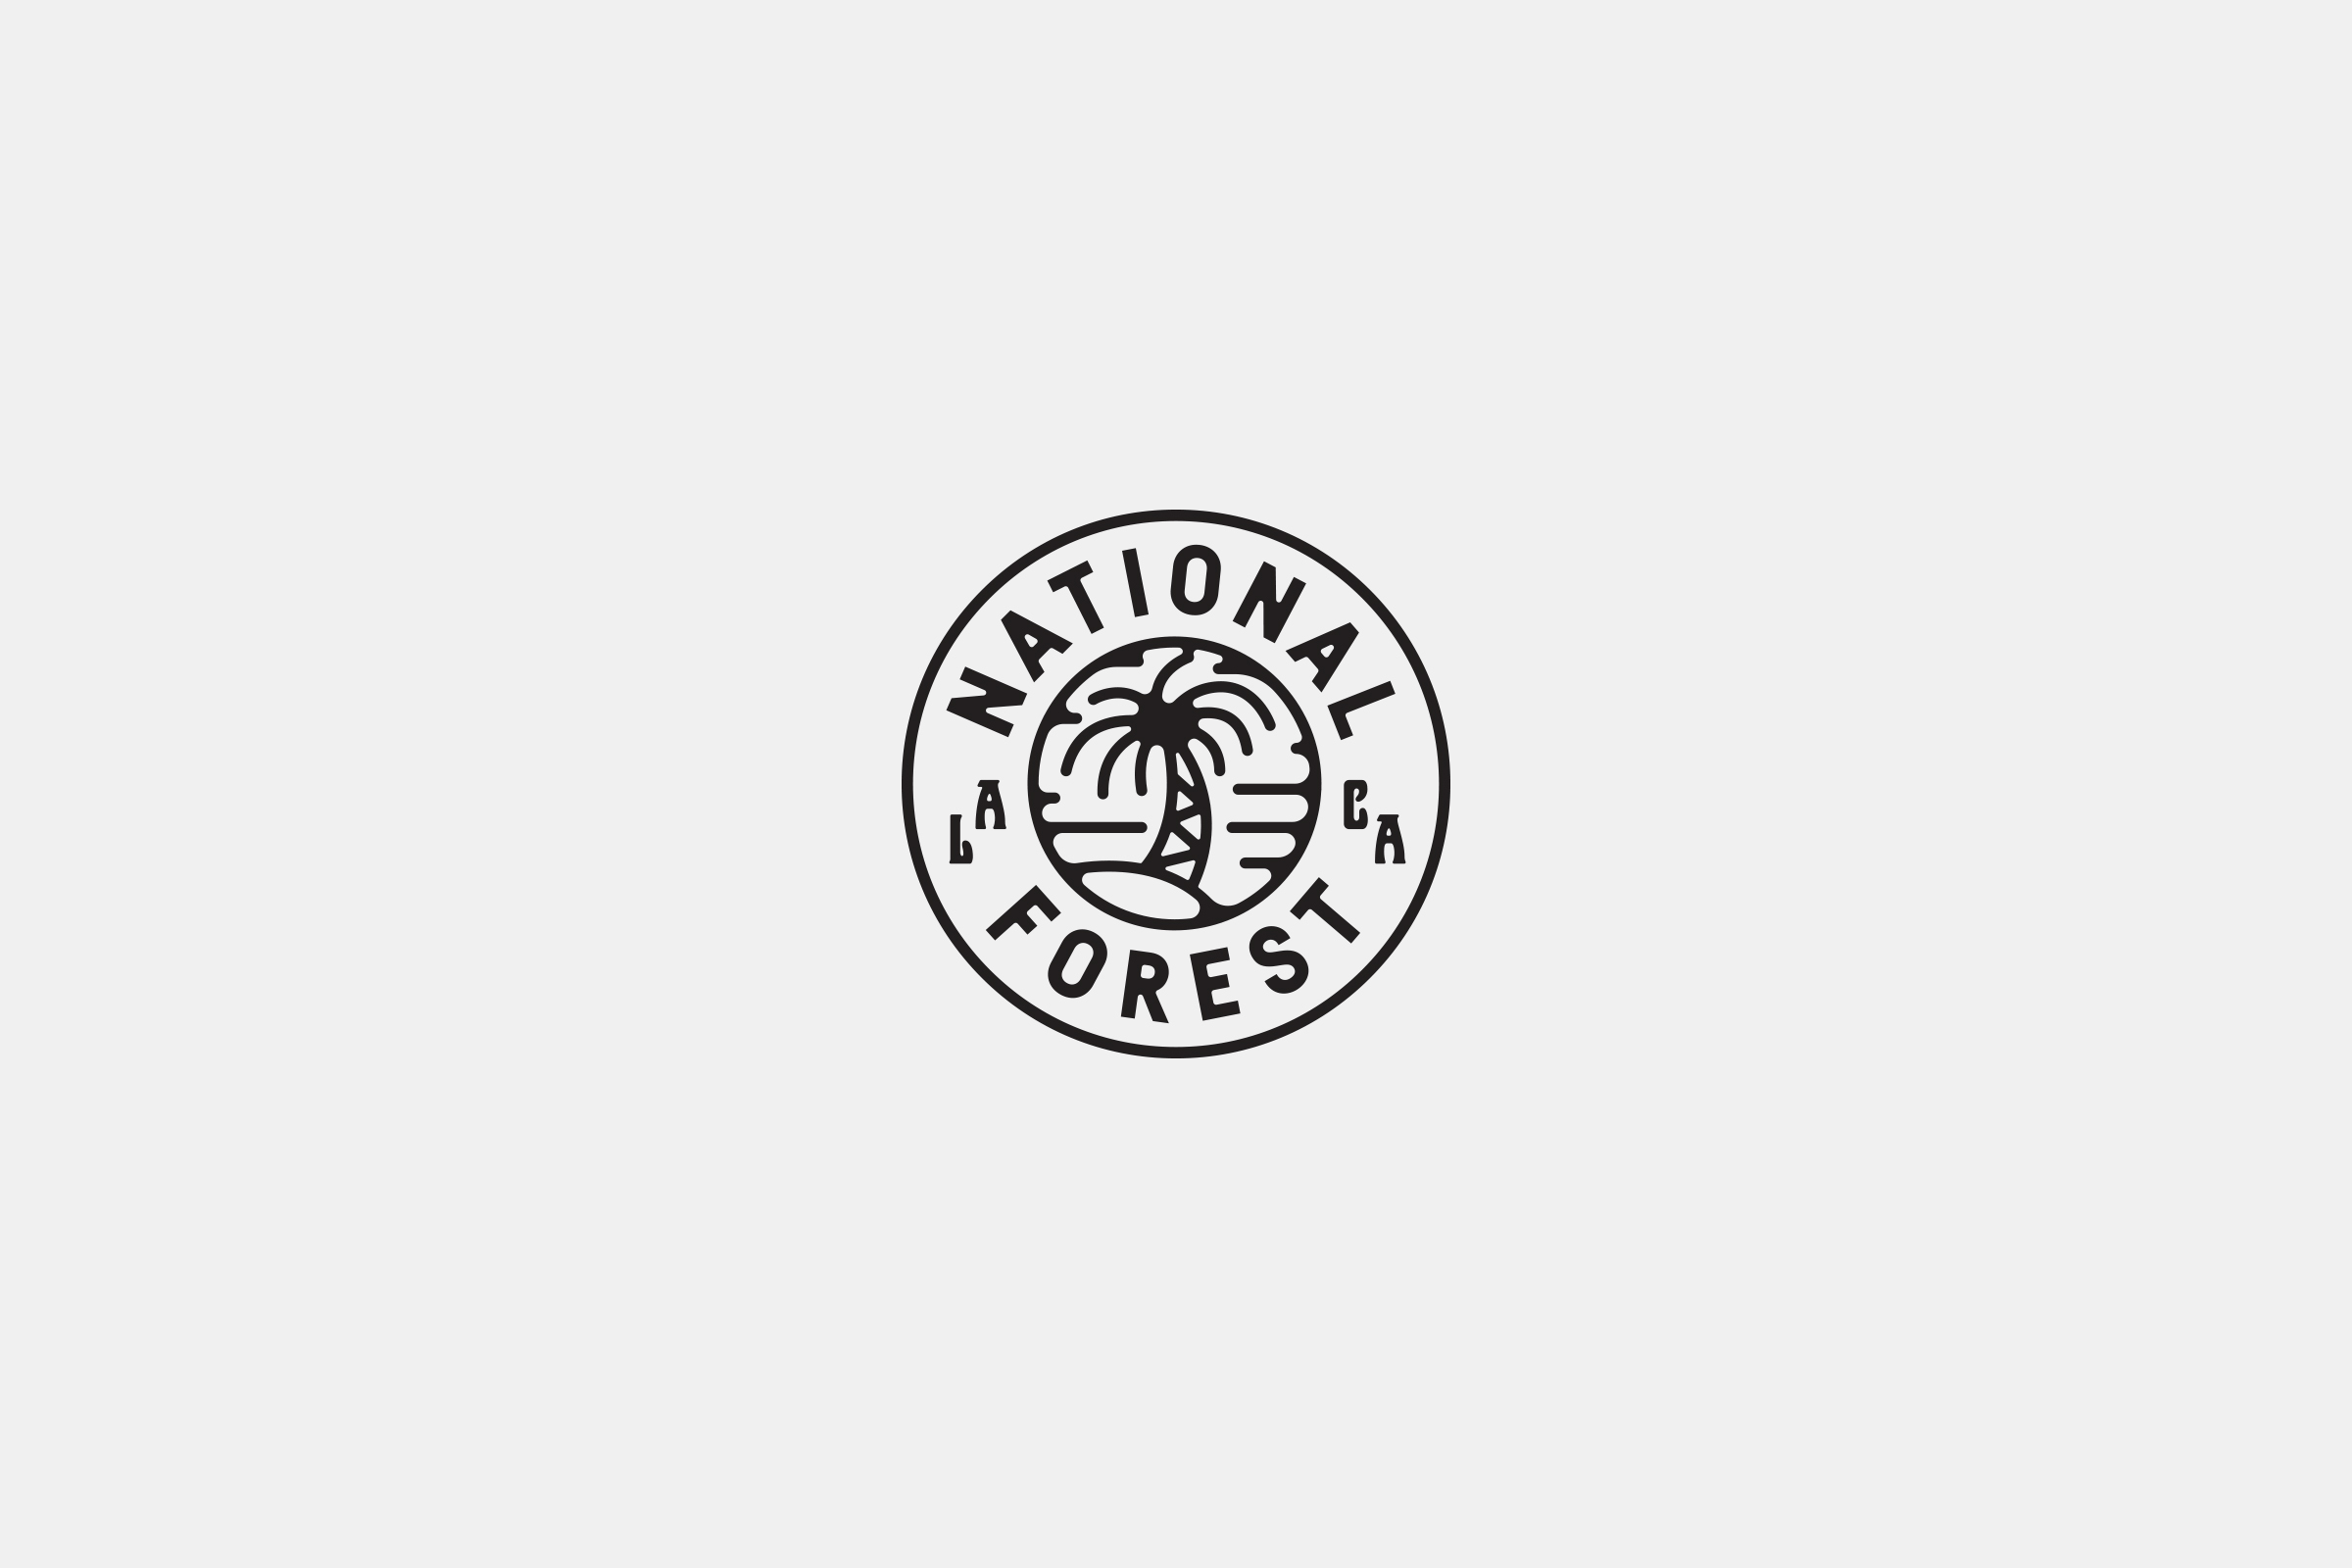 TBS_NationalForest_Logo_2